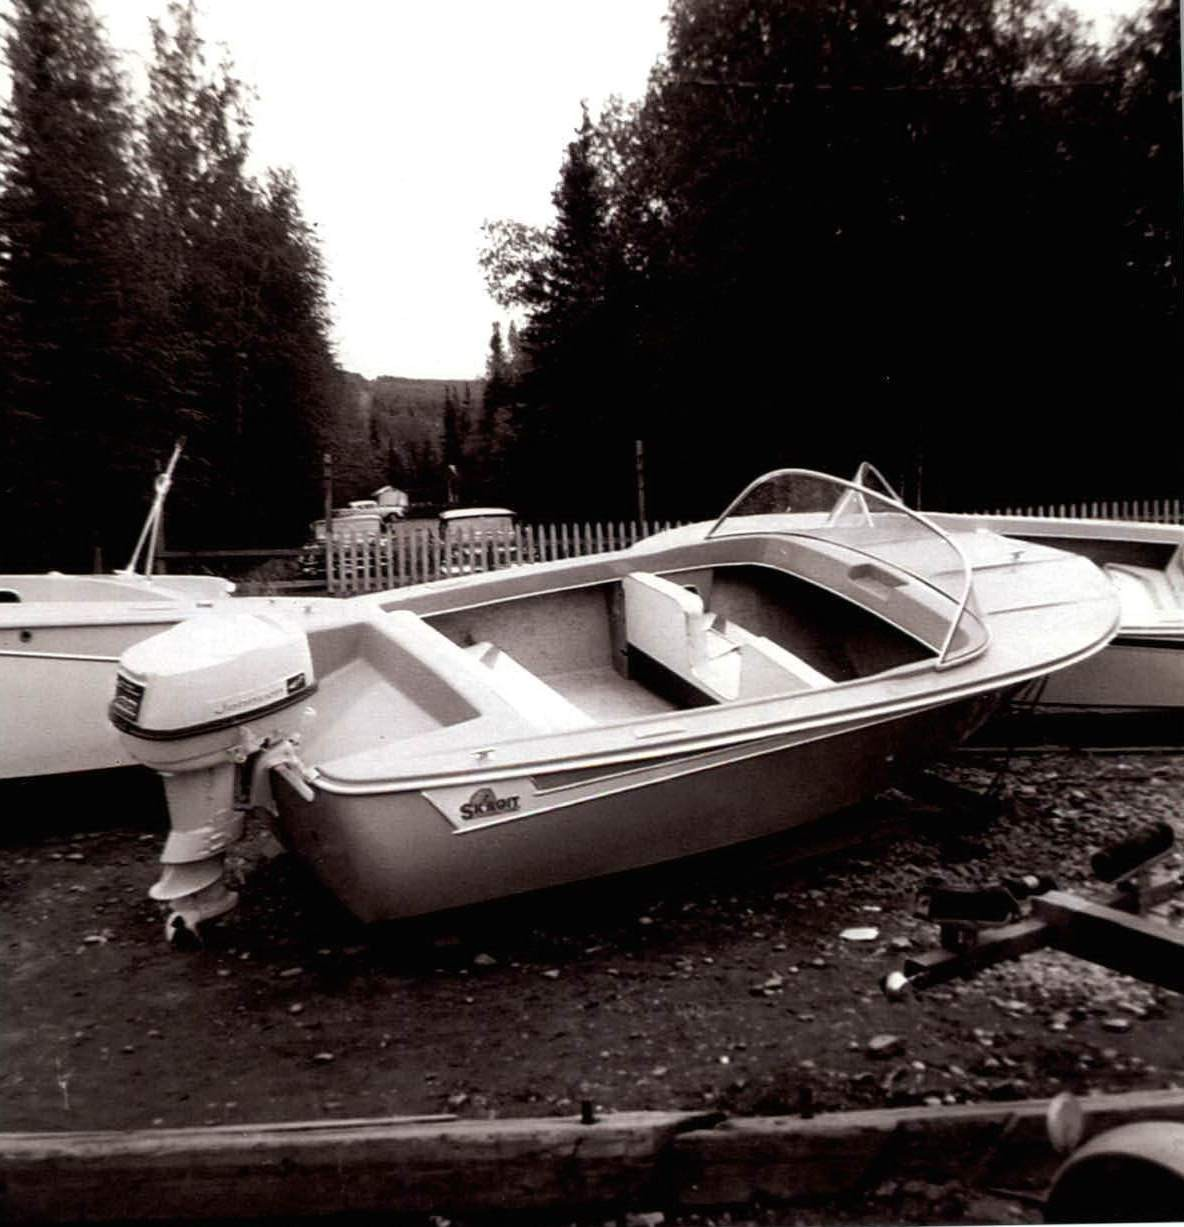 June 1959 Boats for sale at old store site.  Photo taken from old store site and 5th Street lake access.